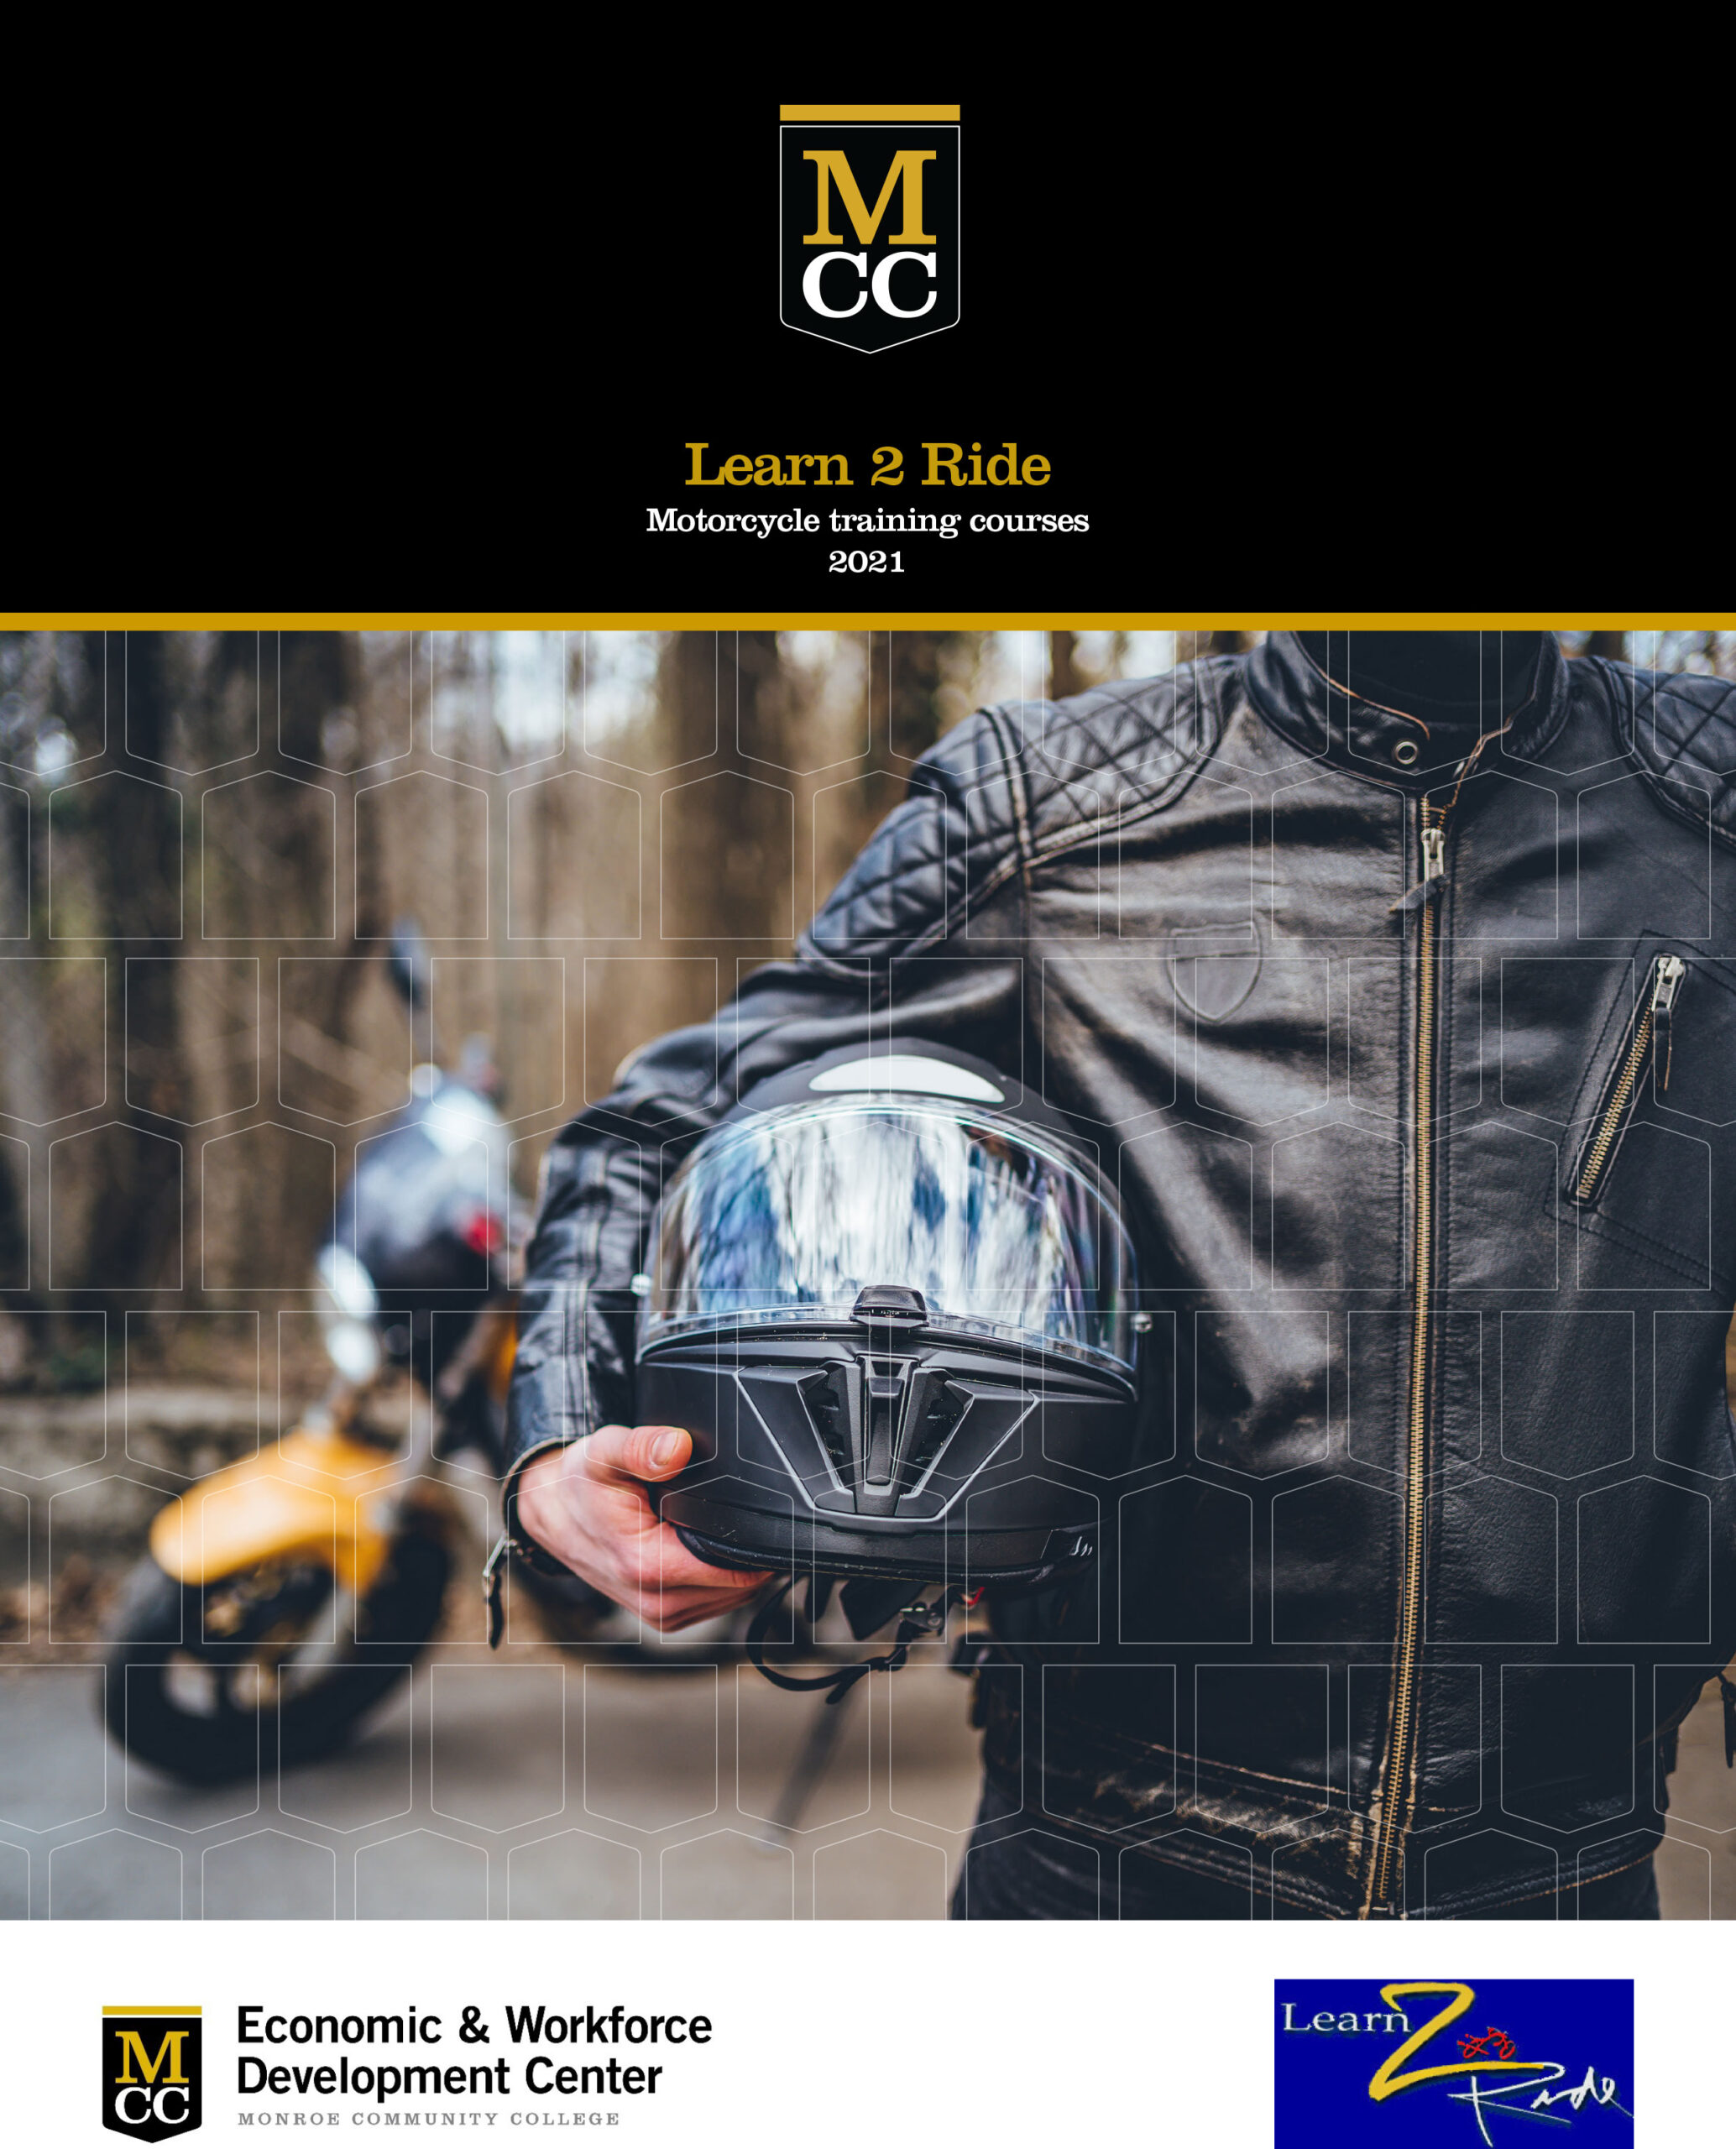 Learn 2 Ride: Motorcycle training courses 2021 Brochure